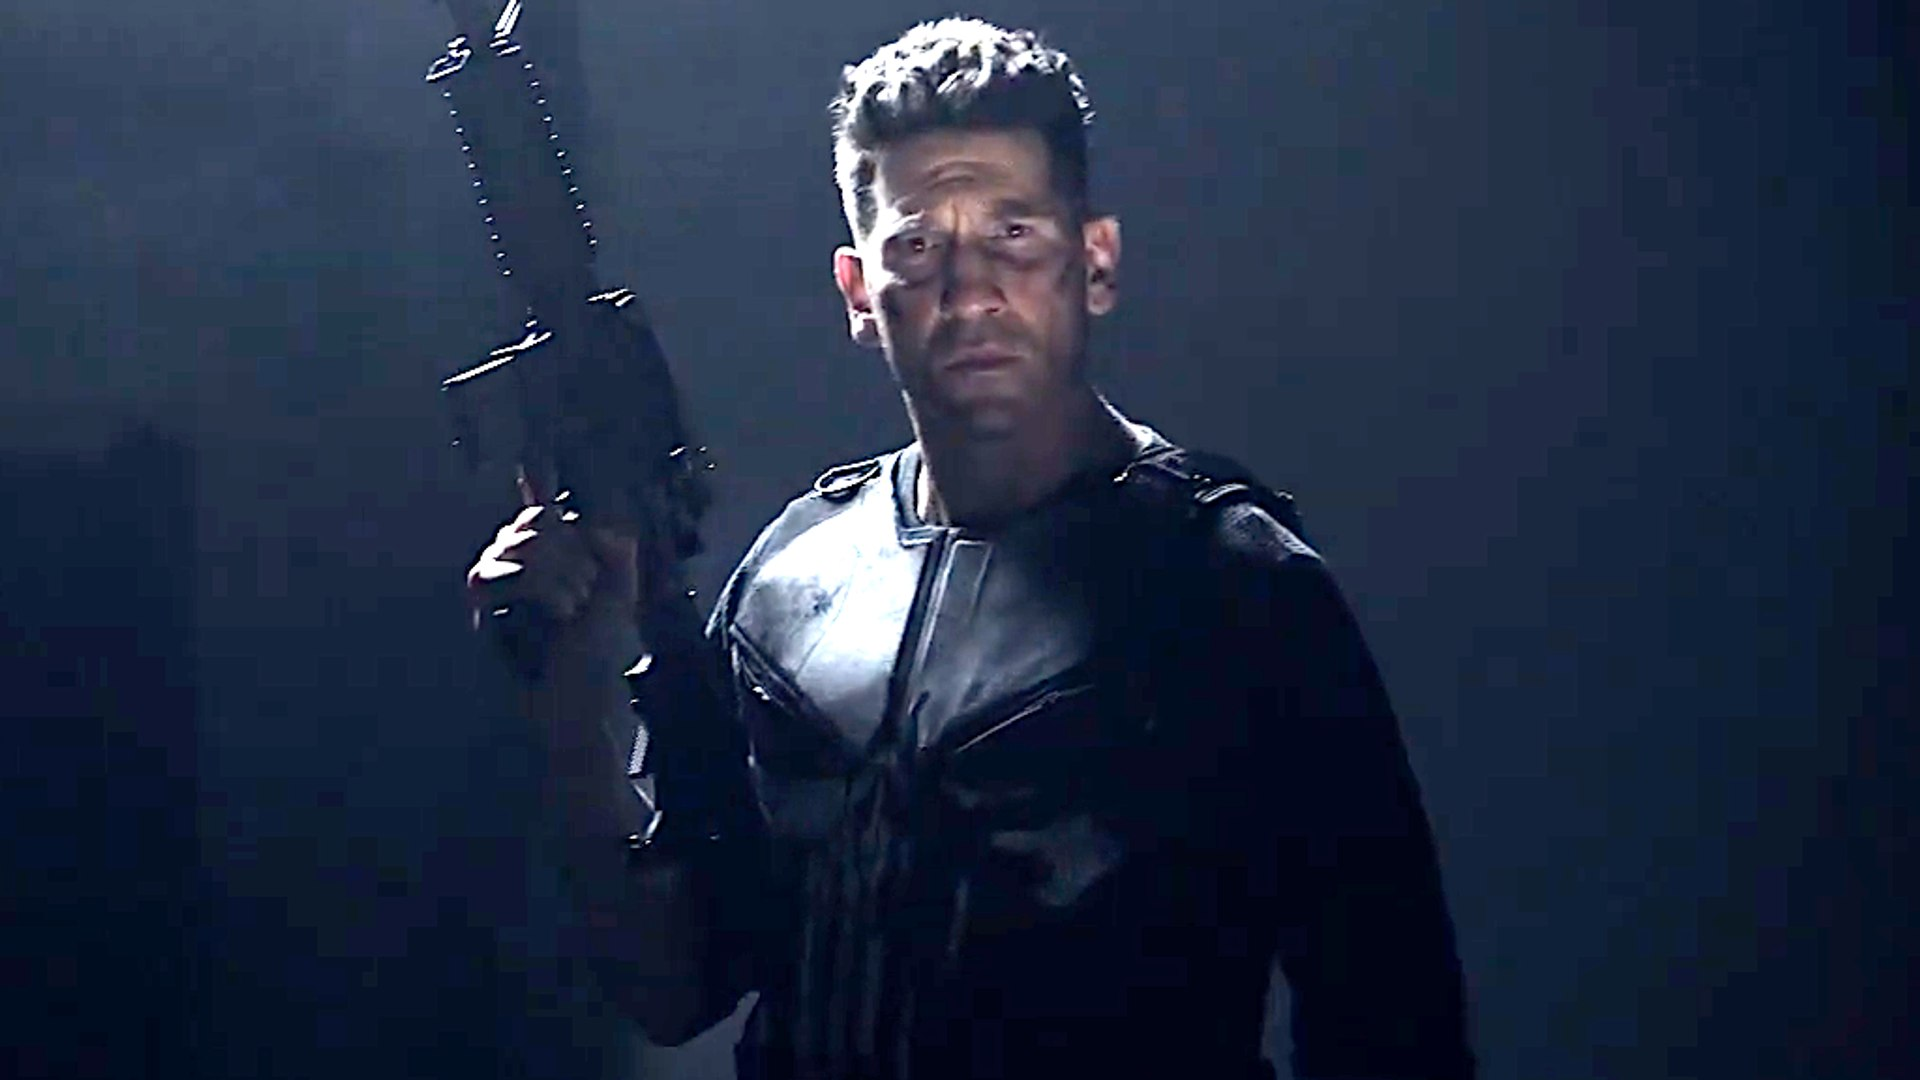 The Punisher Season 2 On Netflix Date Announcement Video